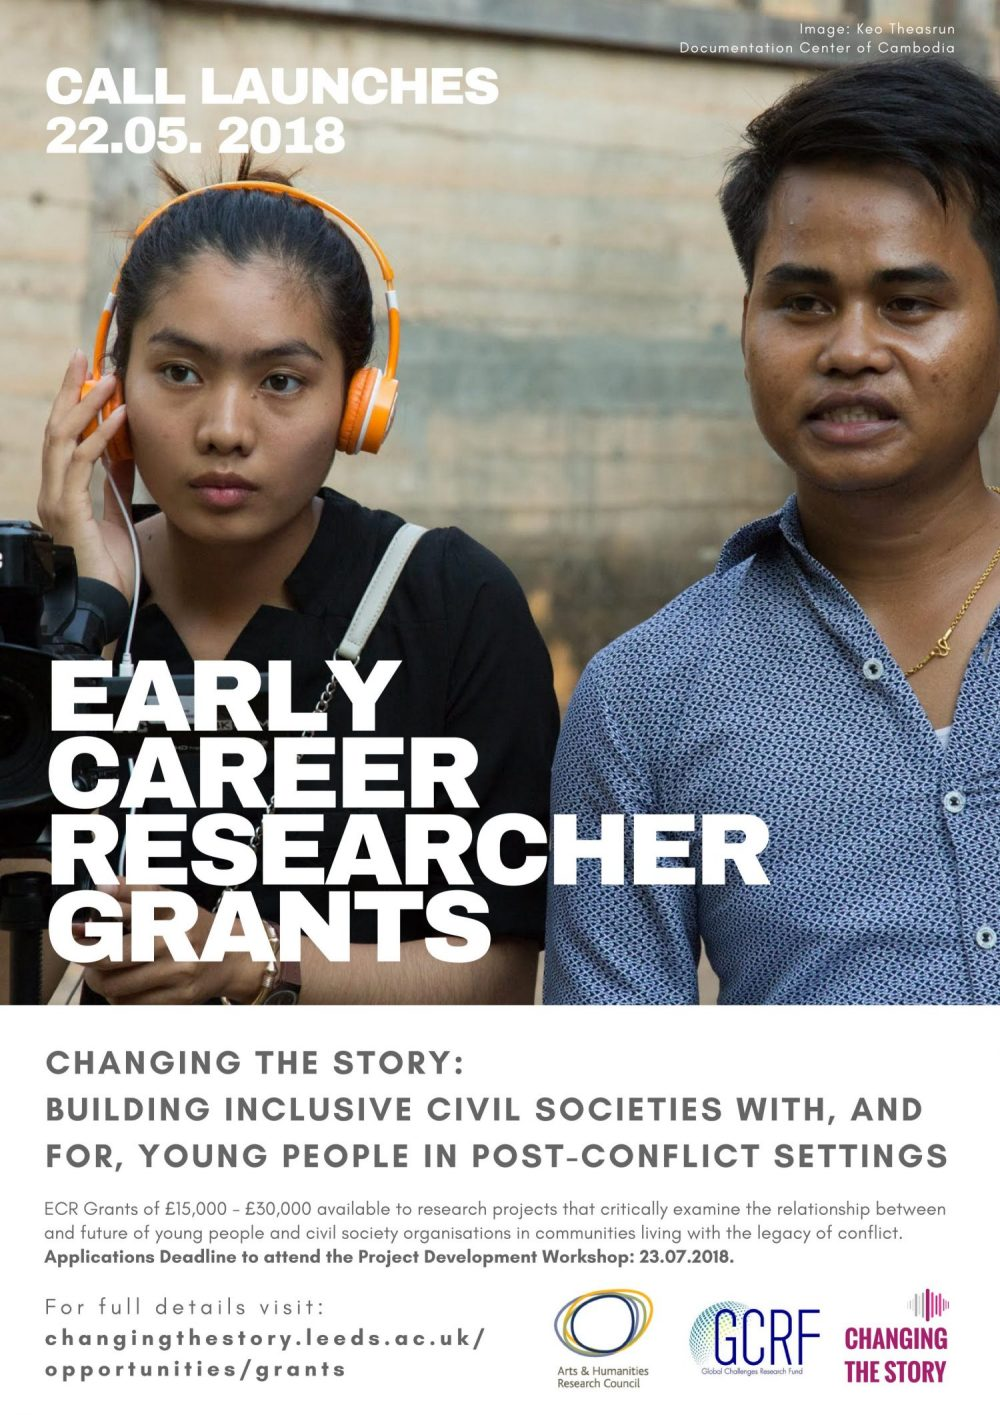 EARLY CAREER RESEARCHER GRANTS (2018)